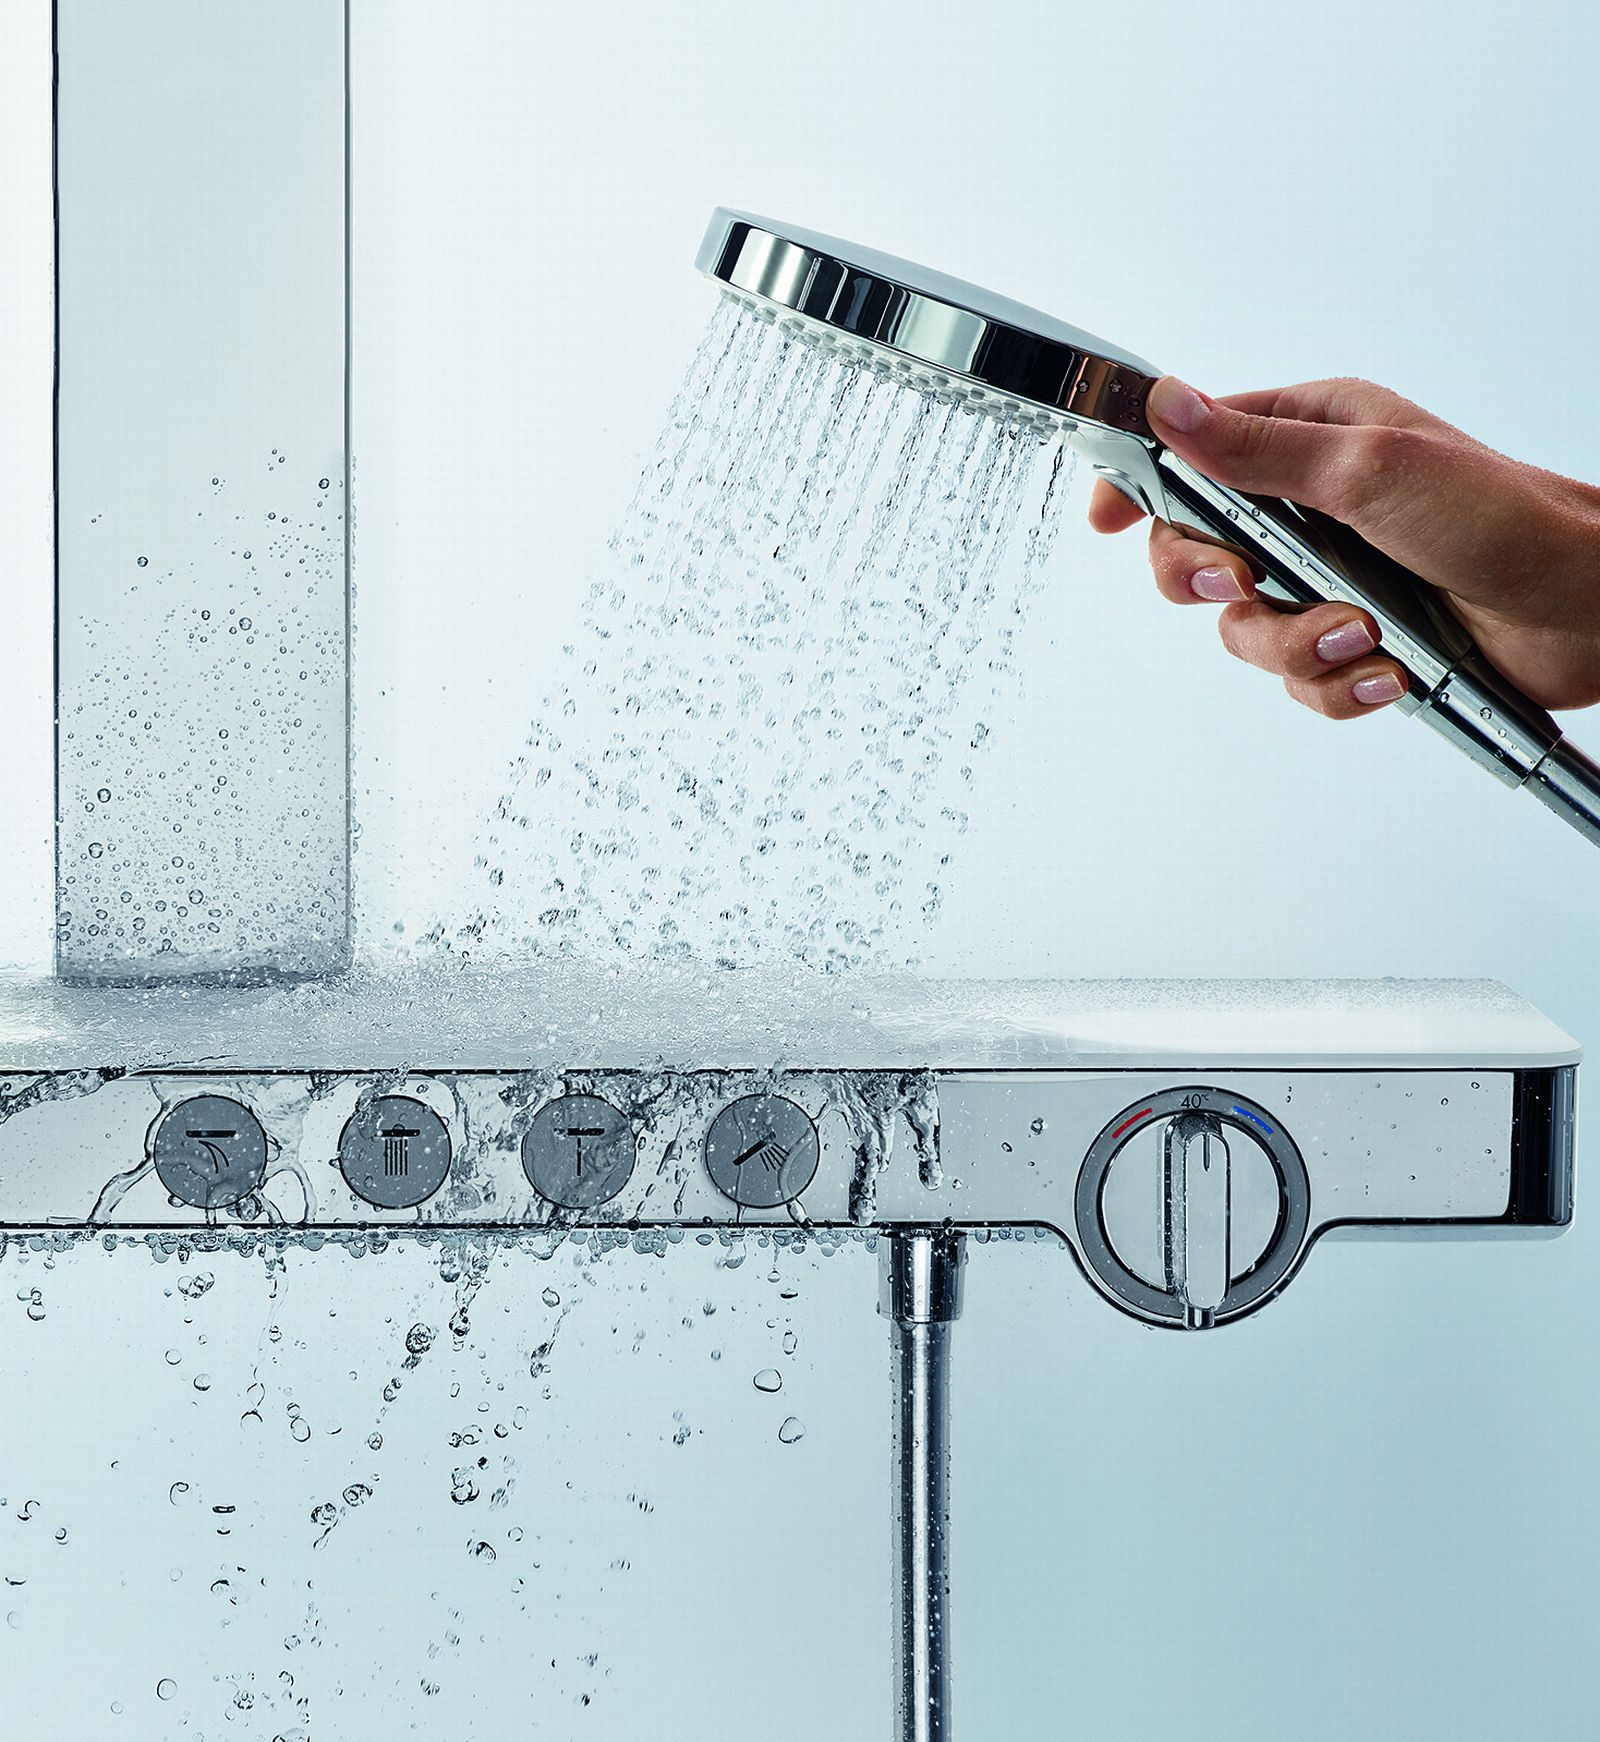 Shower system of the HDO with a overhead shower from which a water jet escapes